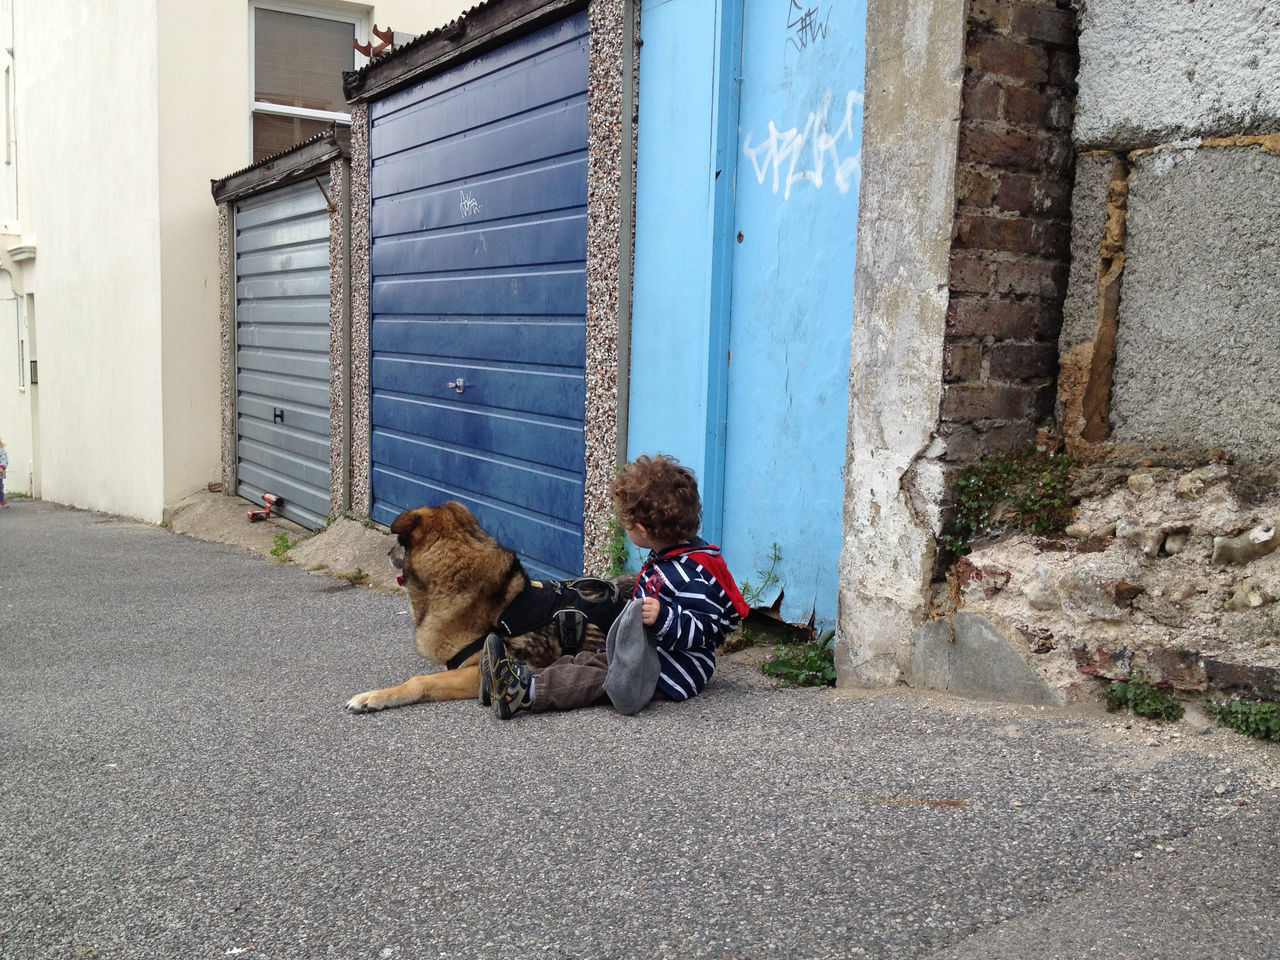 Streetwatch in Blue Blue Child Child With Dog Dog Dog With Child Exposed Bricks Garage Door Outdoors Pavement Relaxation Sidewalk Sitting